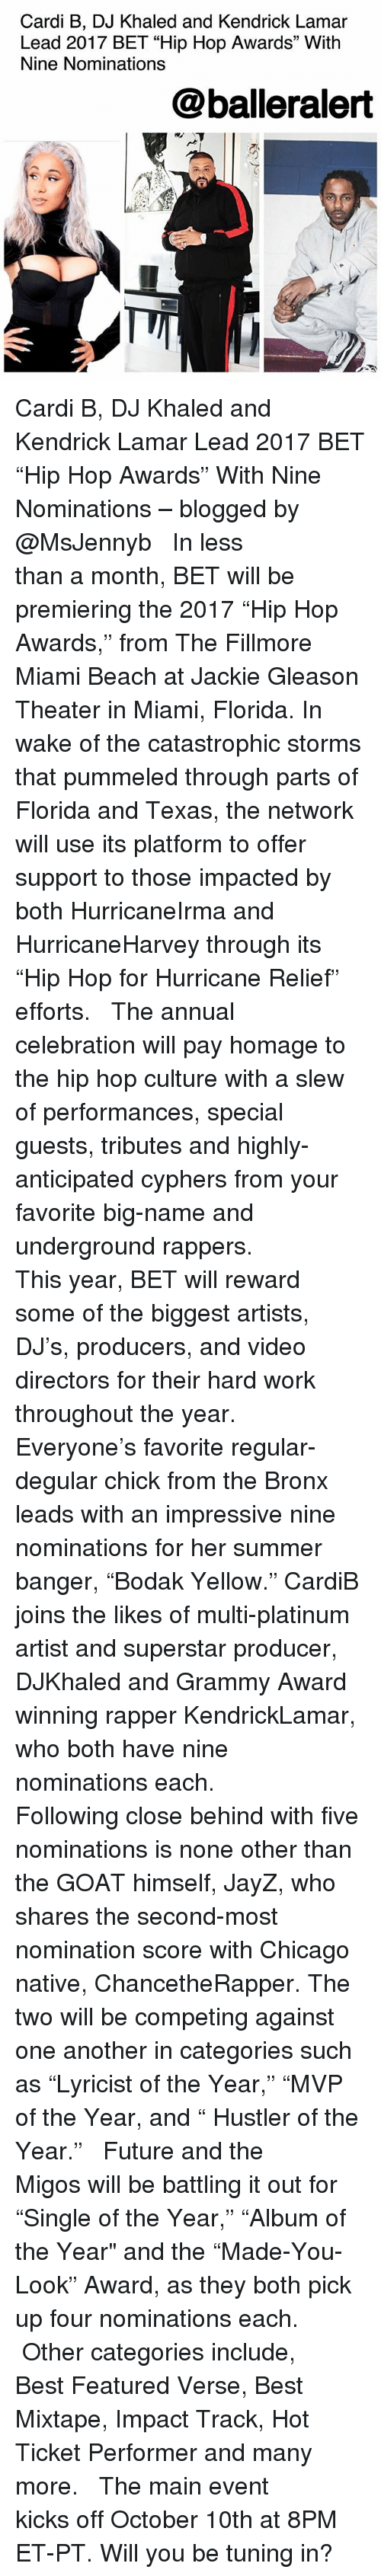 "Chicago, DJ Khaled, and Future: Cardi B, DJ Khaled and Kendrick Lamar  Lead 2017 BET ""Hip Hop Awards"" With  Nine Nominations  @balleralert Cardi B, DJ Khaled and Kendrick Lamar Lead 2017 BET ""Hip Hop Awards"" With Nine Nominations – blogged by @MsJennyb ⠀⠀⠀⠀⠀⠀⠀ ⠀⠀⠀⠀⠀⠀⠀ In less than a month, BET will be premiering the 2017 ""Hip Hop Awards,"" from The Fillmore Miami Beach at Jackie Gleason Theater in Miami, Florida. In wake of the catastrophic storms that pummeled through parts of Florida and Texas, the network will use its platform to offer support to those impacted by both HurricaneIrma and HurricaneHarvey through its ""Hip Hop for Hurricane Relief"" efforts. ⠀⠀⠀⠀⠀⠀⠀ ⠀⠀⠀⠀⠀⠀⠀ The annual celebration will pay homage to the hip hop culture with a slew of performances, special guests, tributes and highly-anticipated cyphers from your favorite big-name and underground rappers. ⠀⠀⠀⠀⠀⠀⠀ ⠀⠀⠀⠀⠀⠀⠀ This year, BET will reward some of the biggest artists, DJ's, producers, and video directors for their hard work throughout the year. ⠀⠀⠀⠀⠀⠀⠀ ⠀⠀⠀⠀⠀⠀⠀ Everyone's favorite regular-degular chick from the Bronx leads with an impressive nine nominations for her summer banger, ""Bodak Yellow."" CardiB joins the likes of multi-platinum artist and superstar producer, DJKhaled and Grammy Award winning rapper KendrickLamar, who both have nine nominations each. ⠀⠀⠀⠀⠀⠀⠀ ⠀⠀⠀⠀⠀⠀⠀ Following close behind with five nominations is none other than the GOAT himself, JayZ, who shares the second-most nomination score with Chicago native, ChancetheRapper. The two will be competing against one another in categories such as ""Lyricist of the Year,"" ""MVP of the Year, and "" Hustler of the Year."" ⠀⠀⠀⠀⠀⠀⠀ ⠀⠀⠀⠀⠀⠀⠀ Future and the Migos will be battling it out for ""Single of the Year,"" ""Album of the Year"" and the ""Made-You-Look"" Award, as they both pick up four nominations each. ⠀⠀⠀⠀⠀⠀⠀ ⠀⠀⠀⠀⠀⠀⠀ Other categories include, Best Featured Verse, Best Mixtape, Impact Track, Hot Ticket Performer and many more. ⠀⠀⠀⠀⠀⠀⠀ ⠀⠀⠀⠀⠀⠀⠀ The main event kicks off October 10th at 8PM ET-PT. Will you be tuning in?"